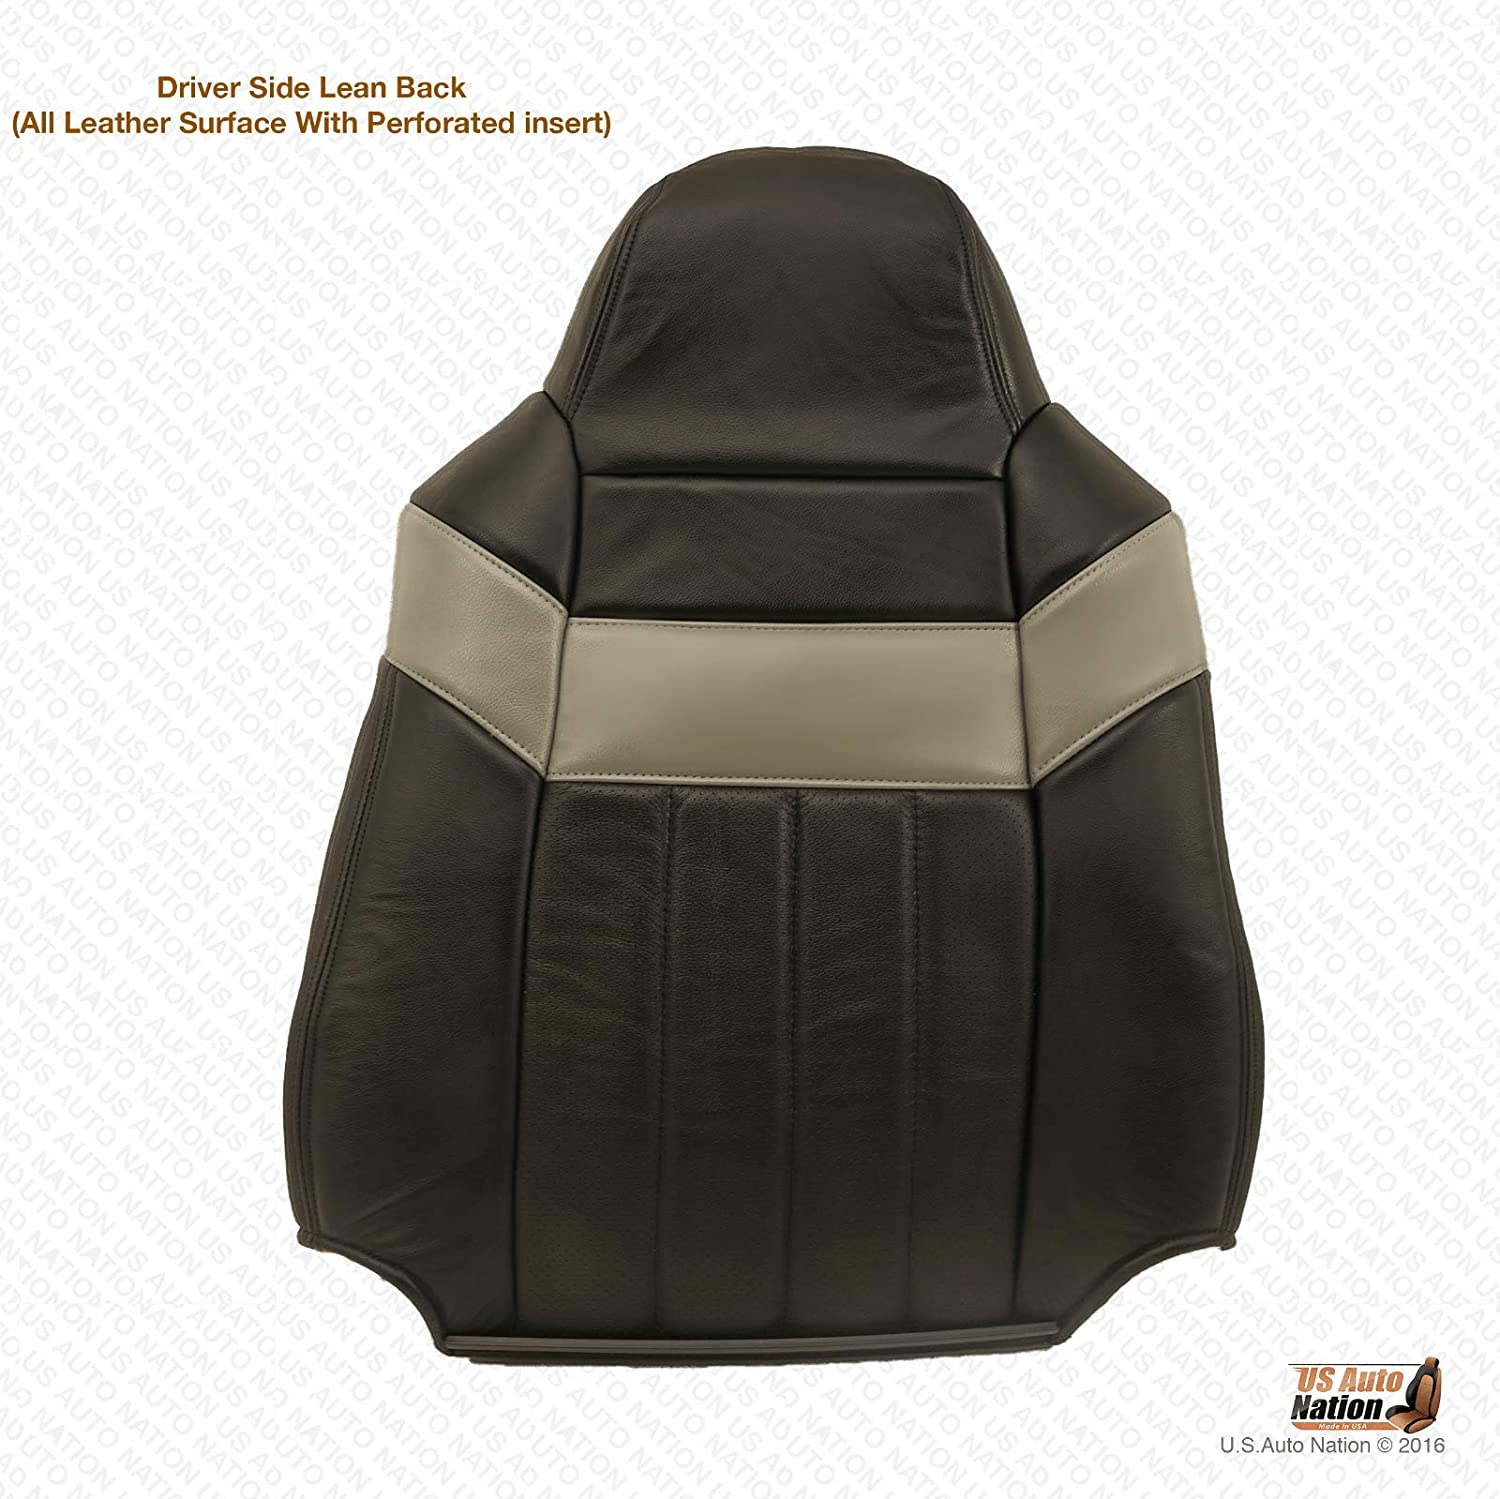 US Auto Nation Fits Ford F250 Harley Davidson Driver Lean Back Perforated Leather Cover Black